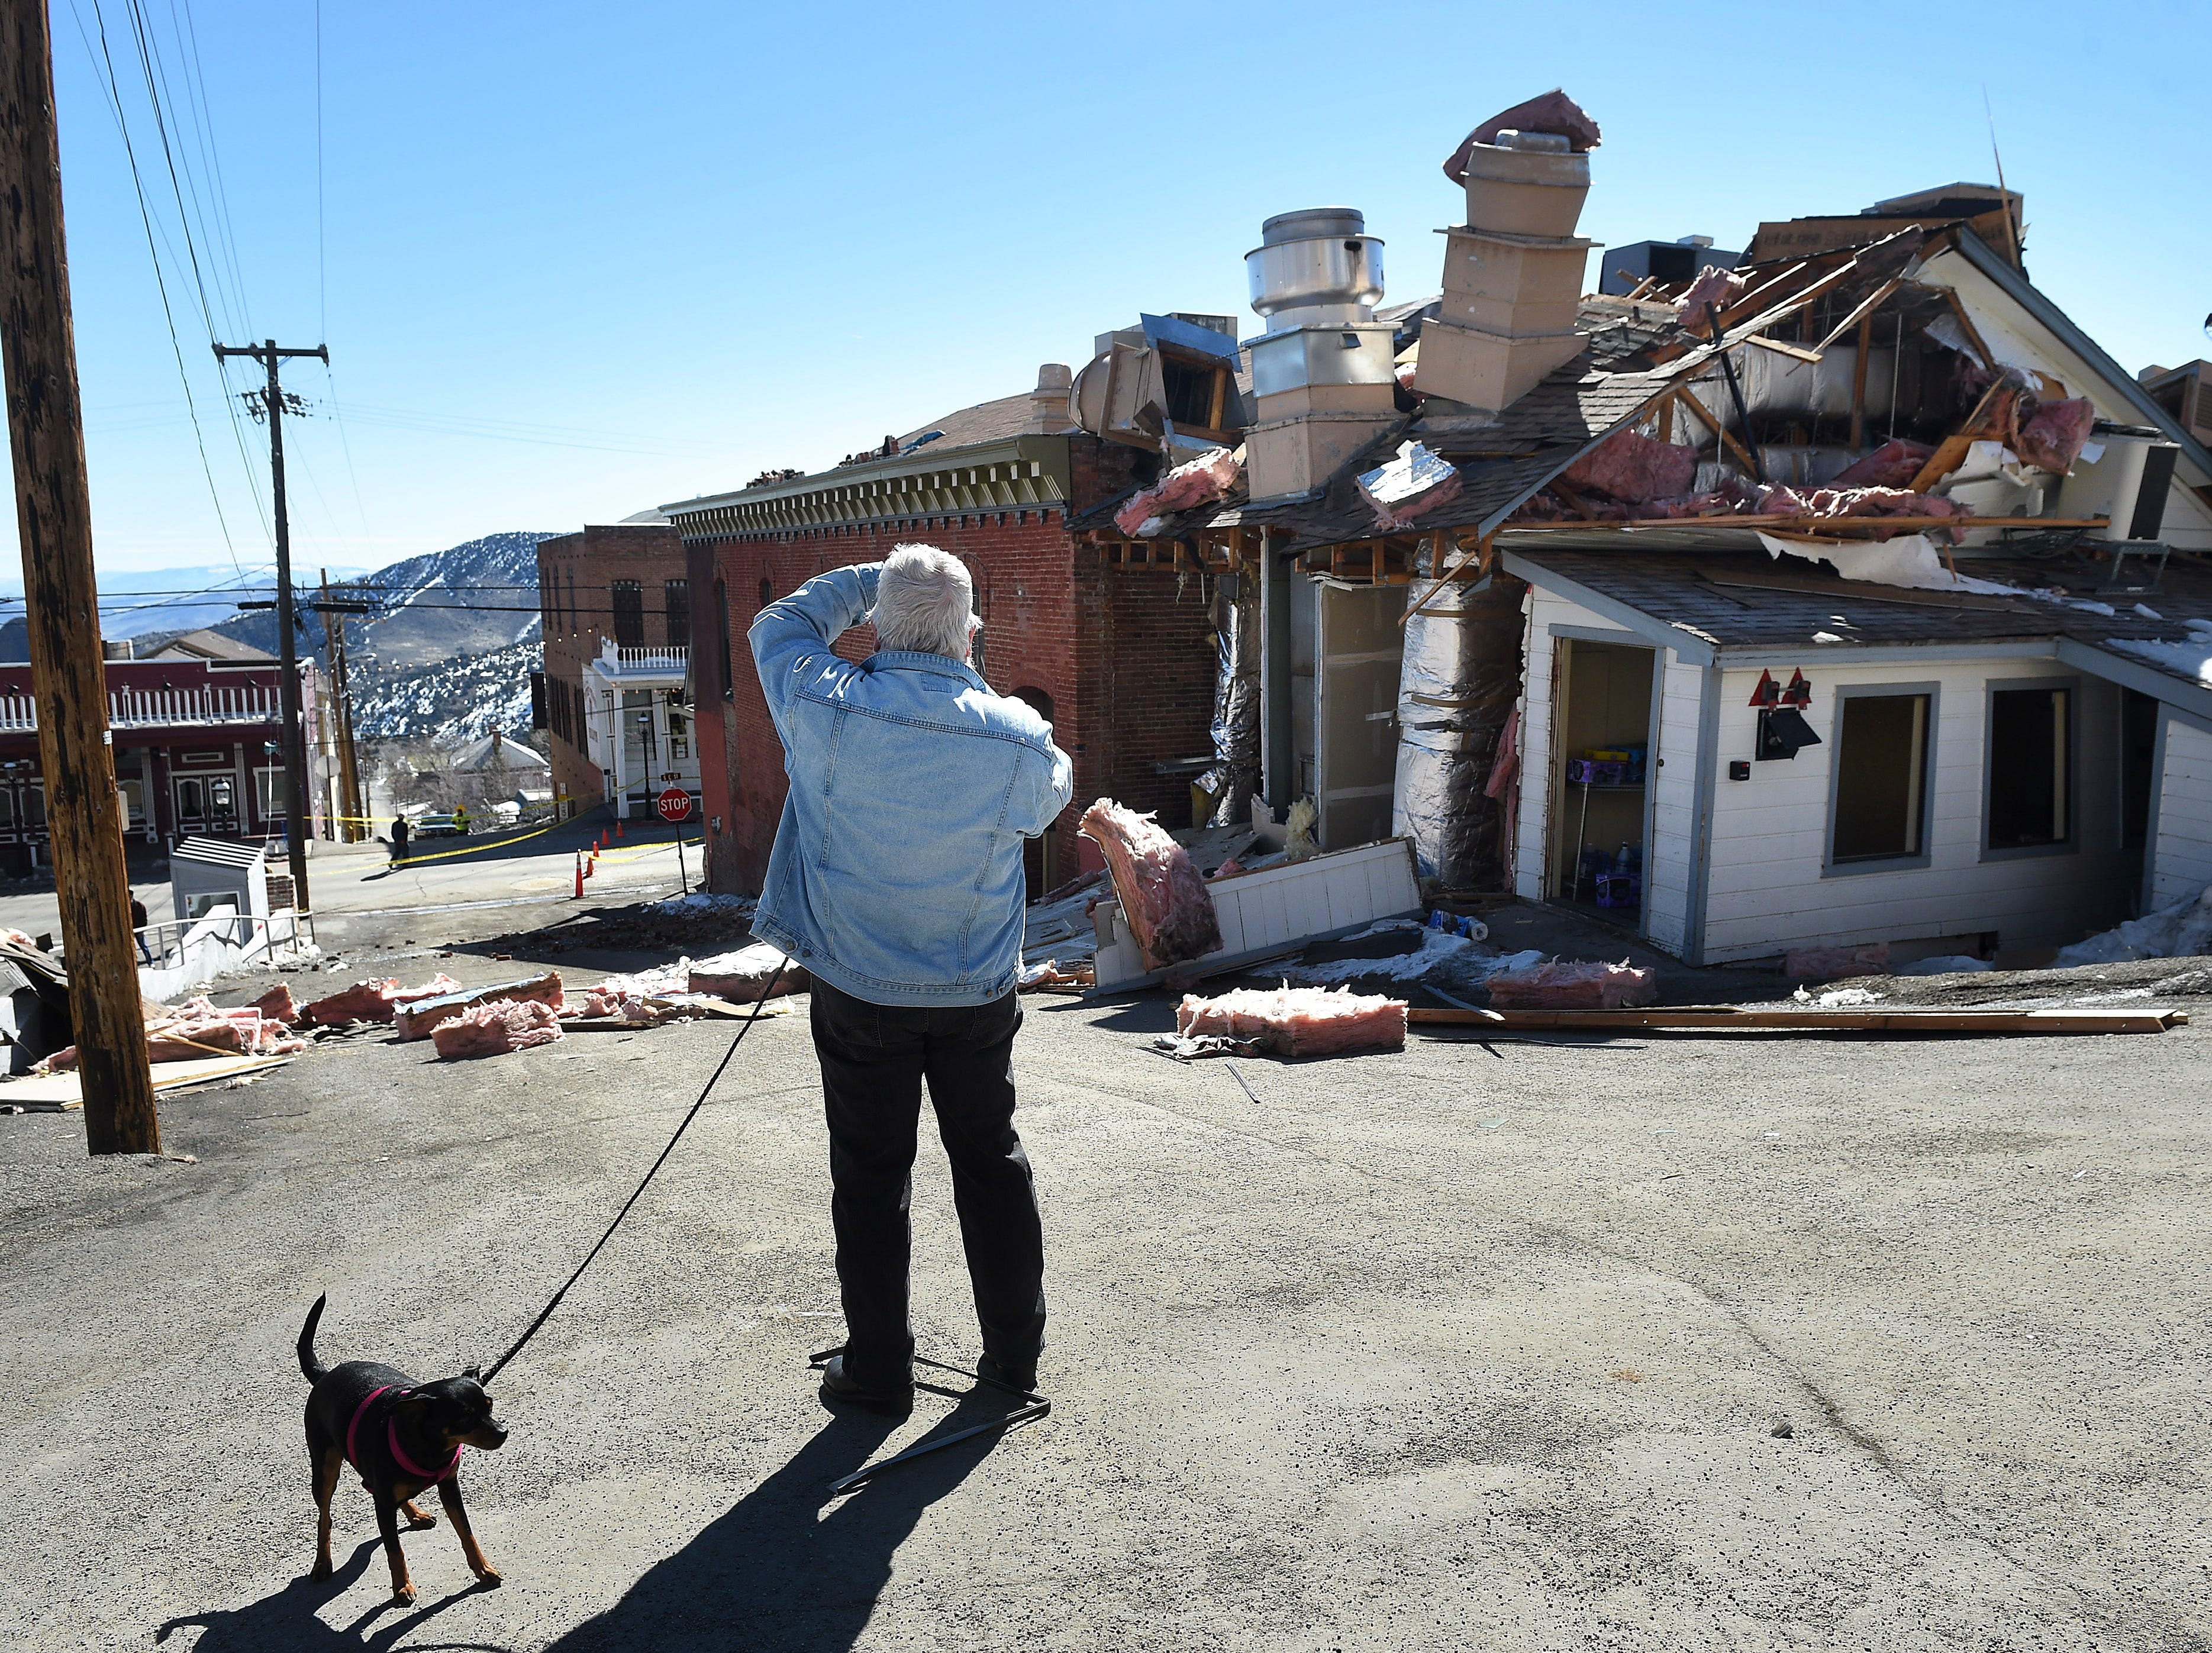 A local resident inspects the aftermath of an explosion at the historic Delta Saloon in Virginia City on March 12, 2019. One employee was in the building at the time of the explosion was not hurt.